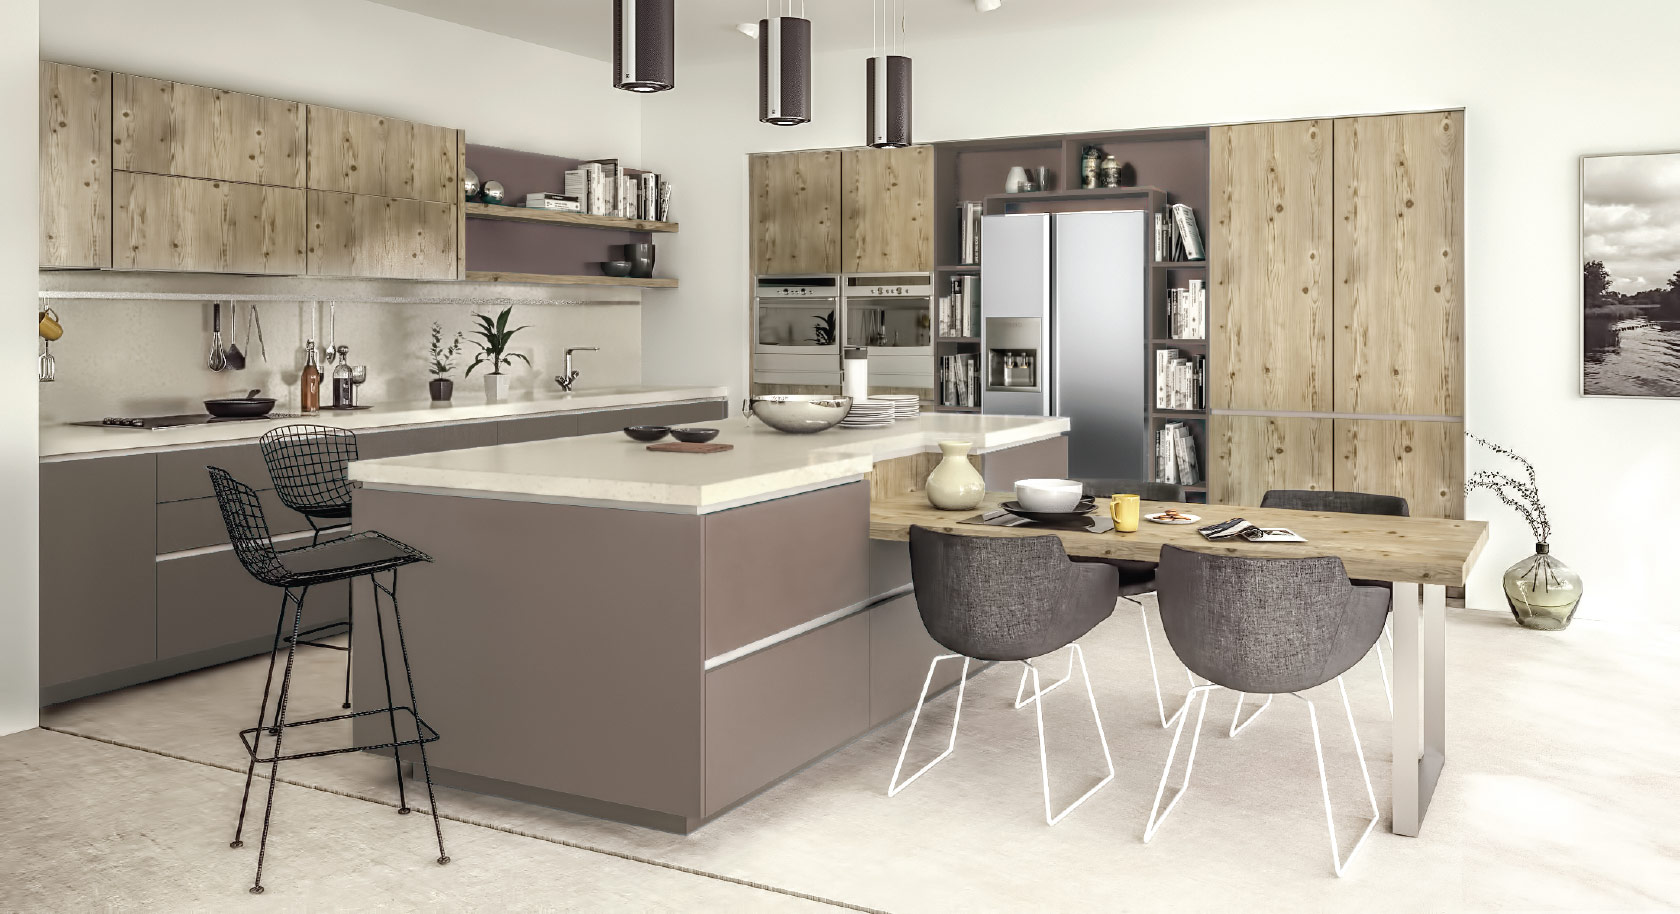 gola brown  handle-less kitchen